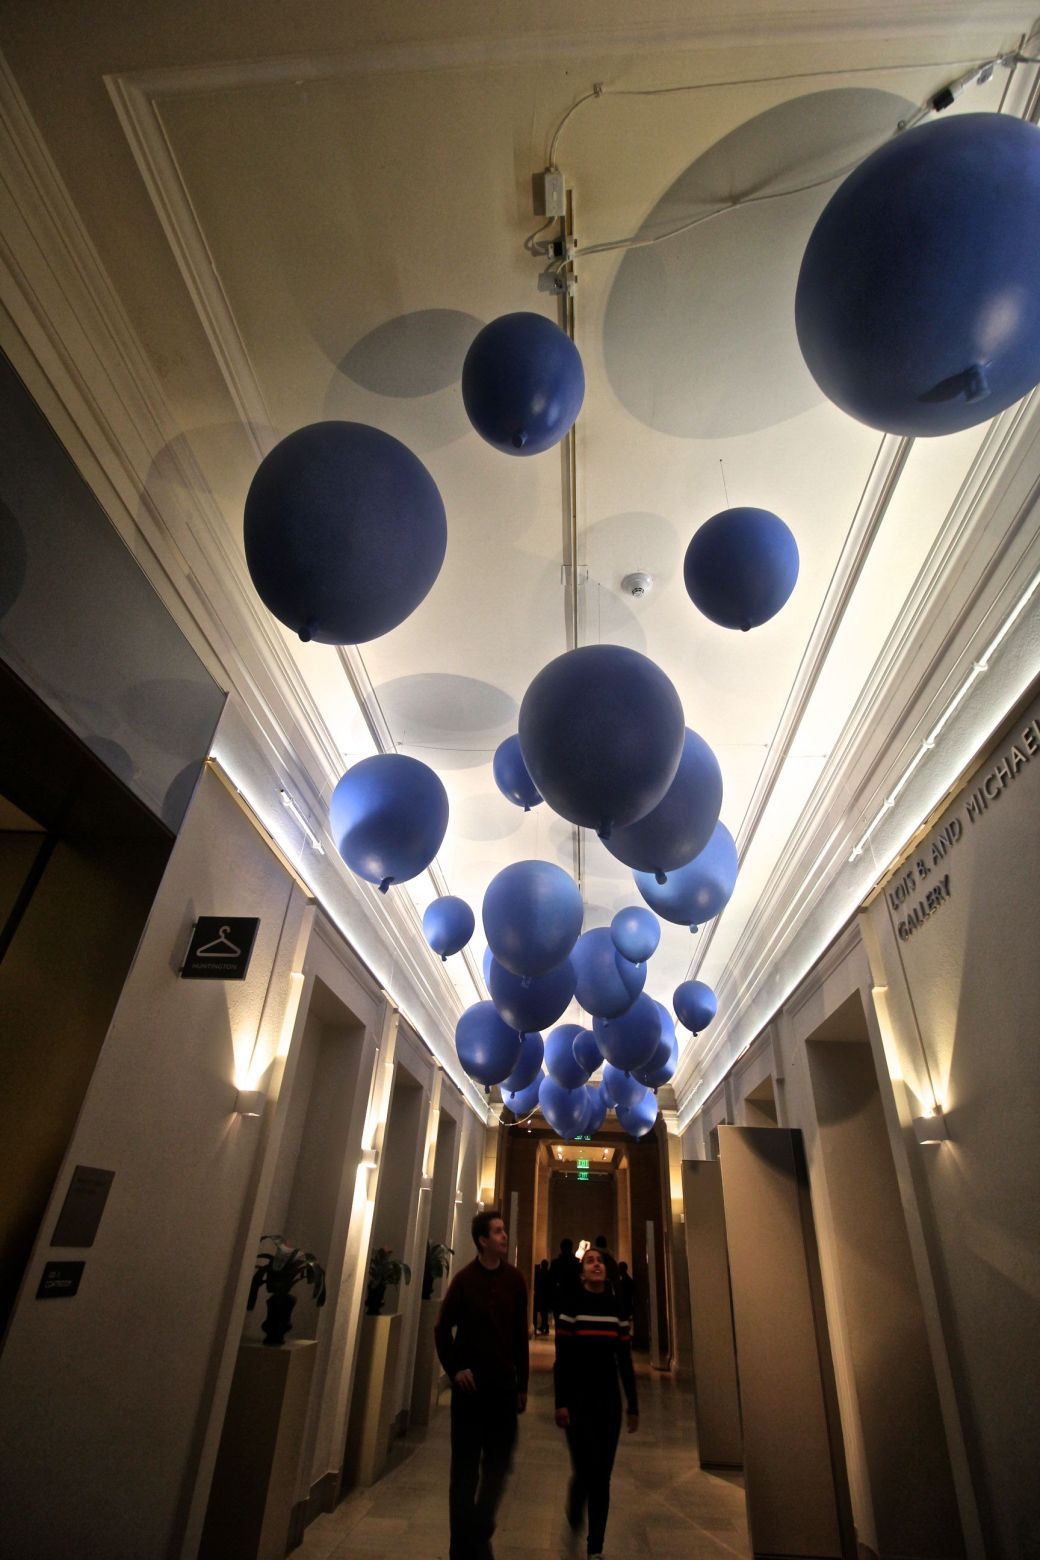 museum of fine arts balloons ceiling